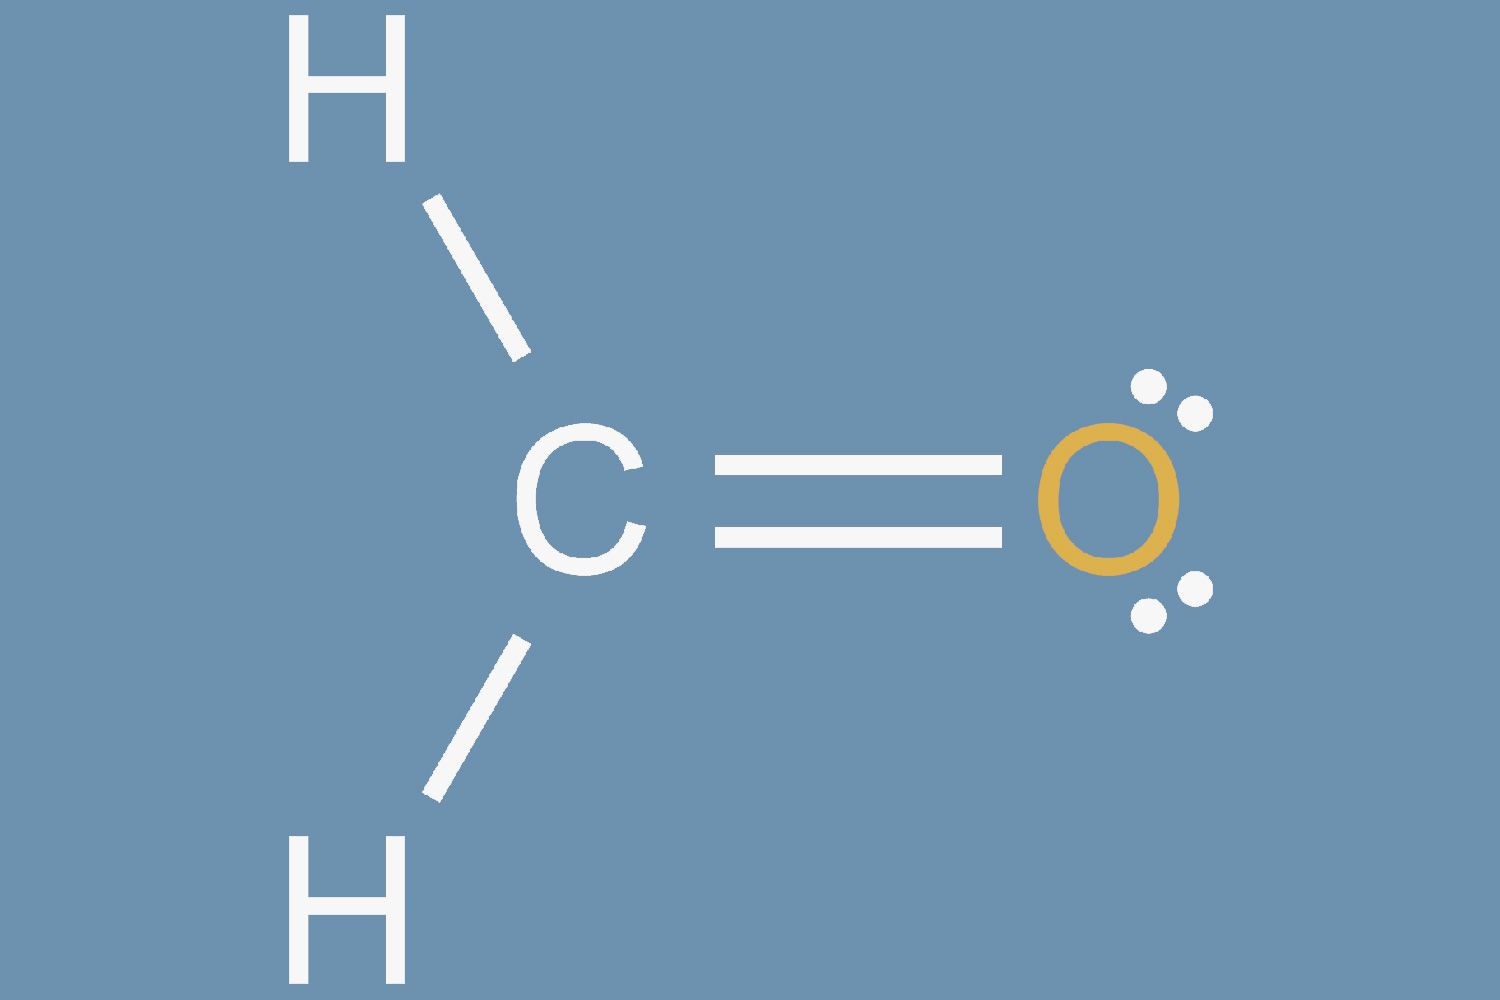 How To Draw A Lewis Structure